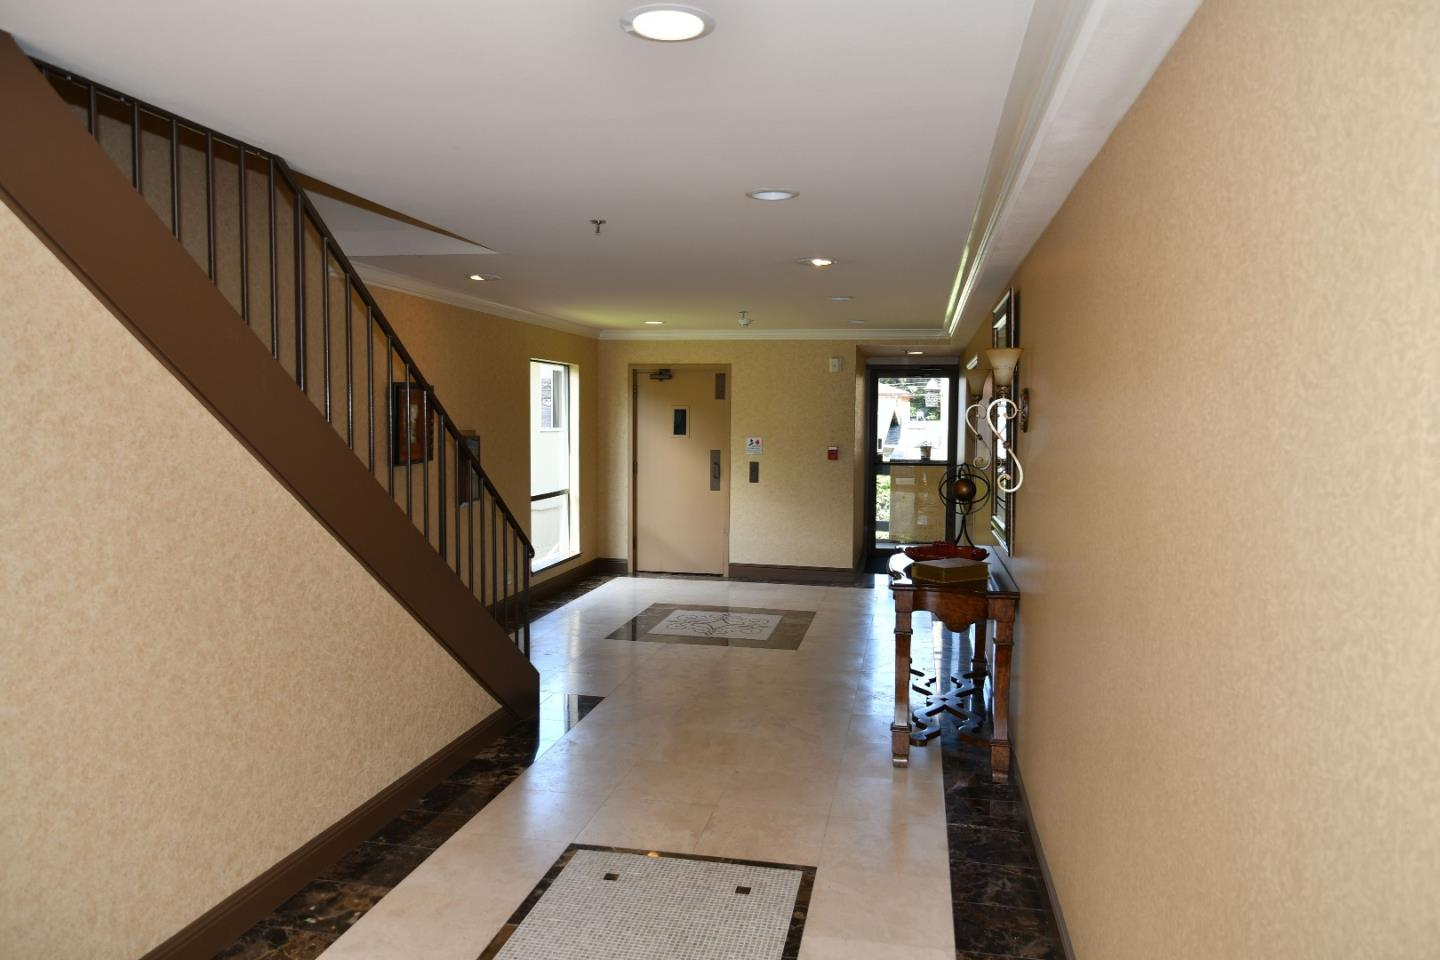 Additional photo for property listing at 1056 El Camino Real  Burlingame, California 94010 United States